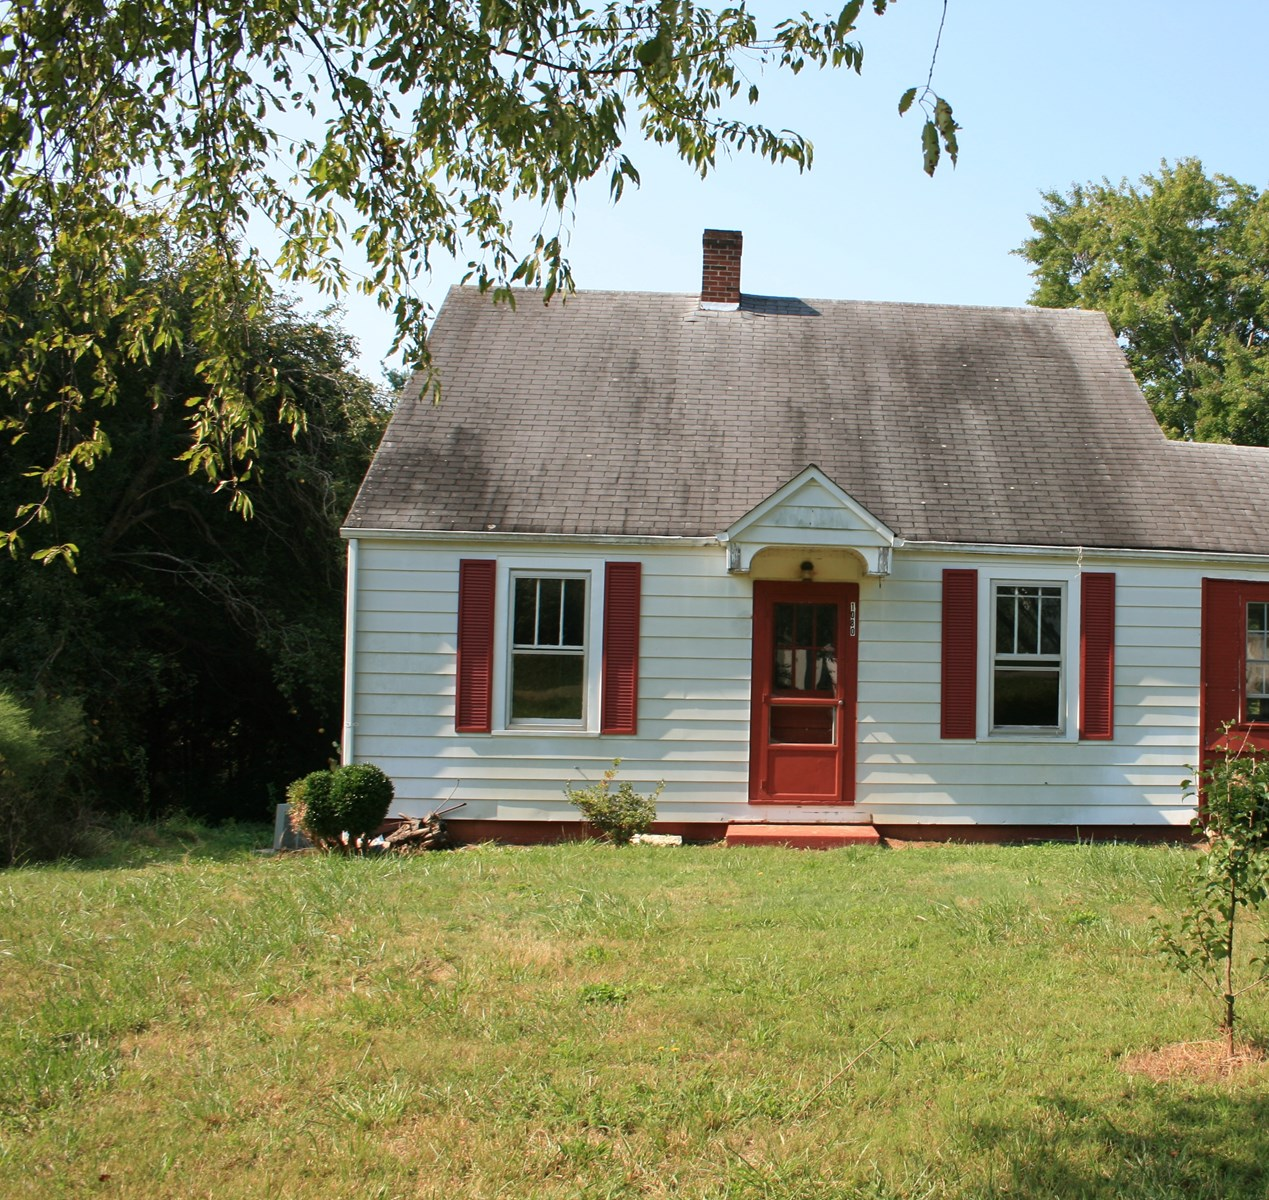 1.5 Story Home for Sale in Patrick County, VA